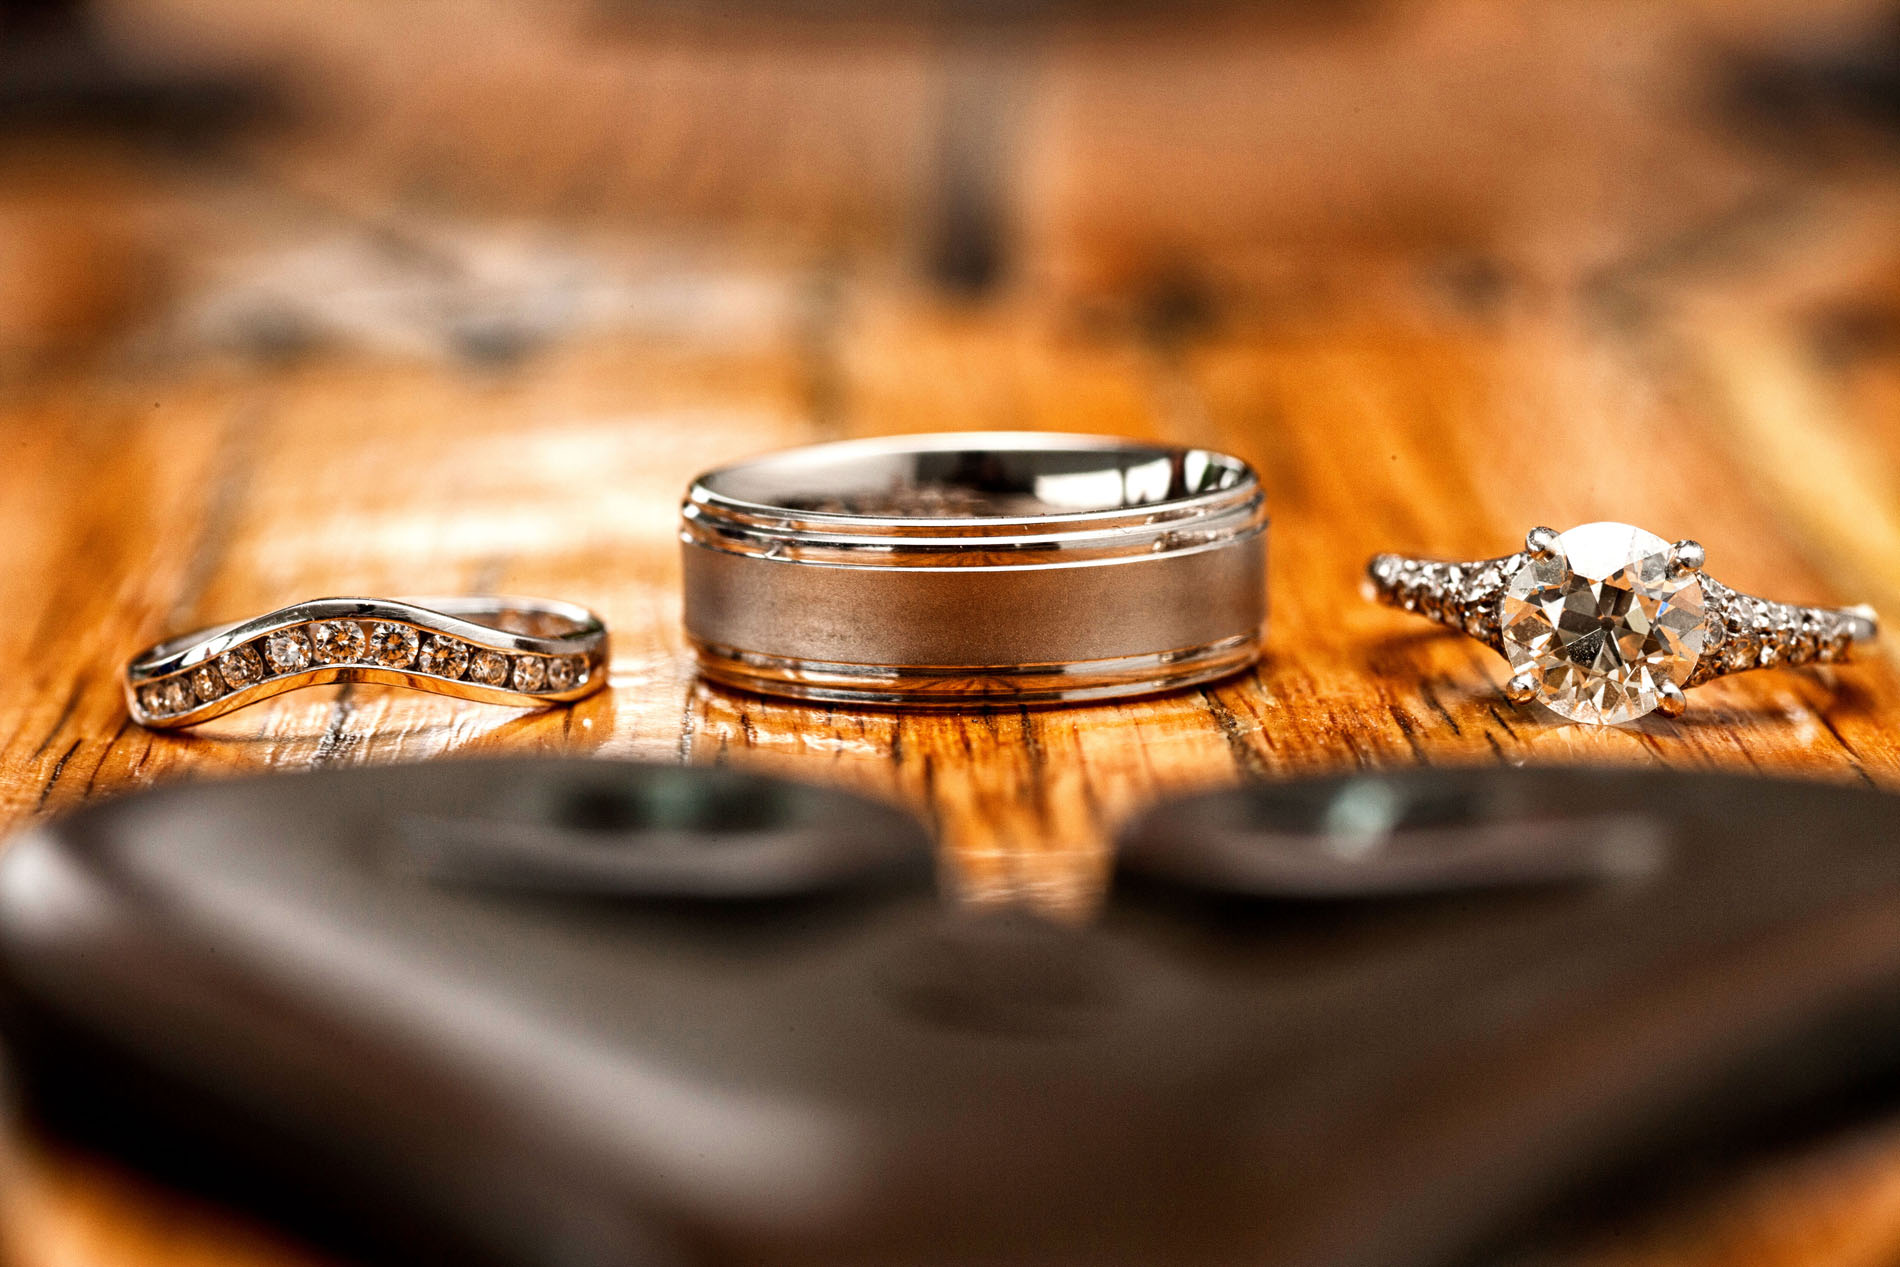 Favorite Wedding Pictures from Wentworth - wedding rings